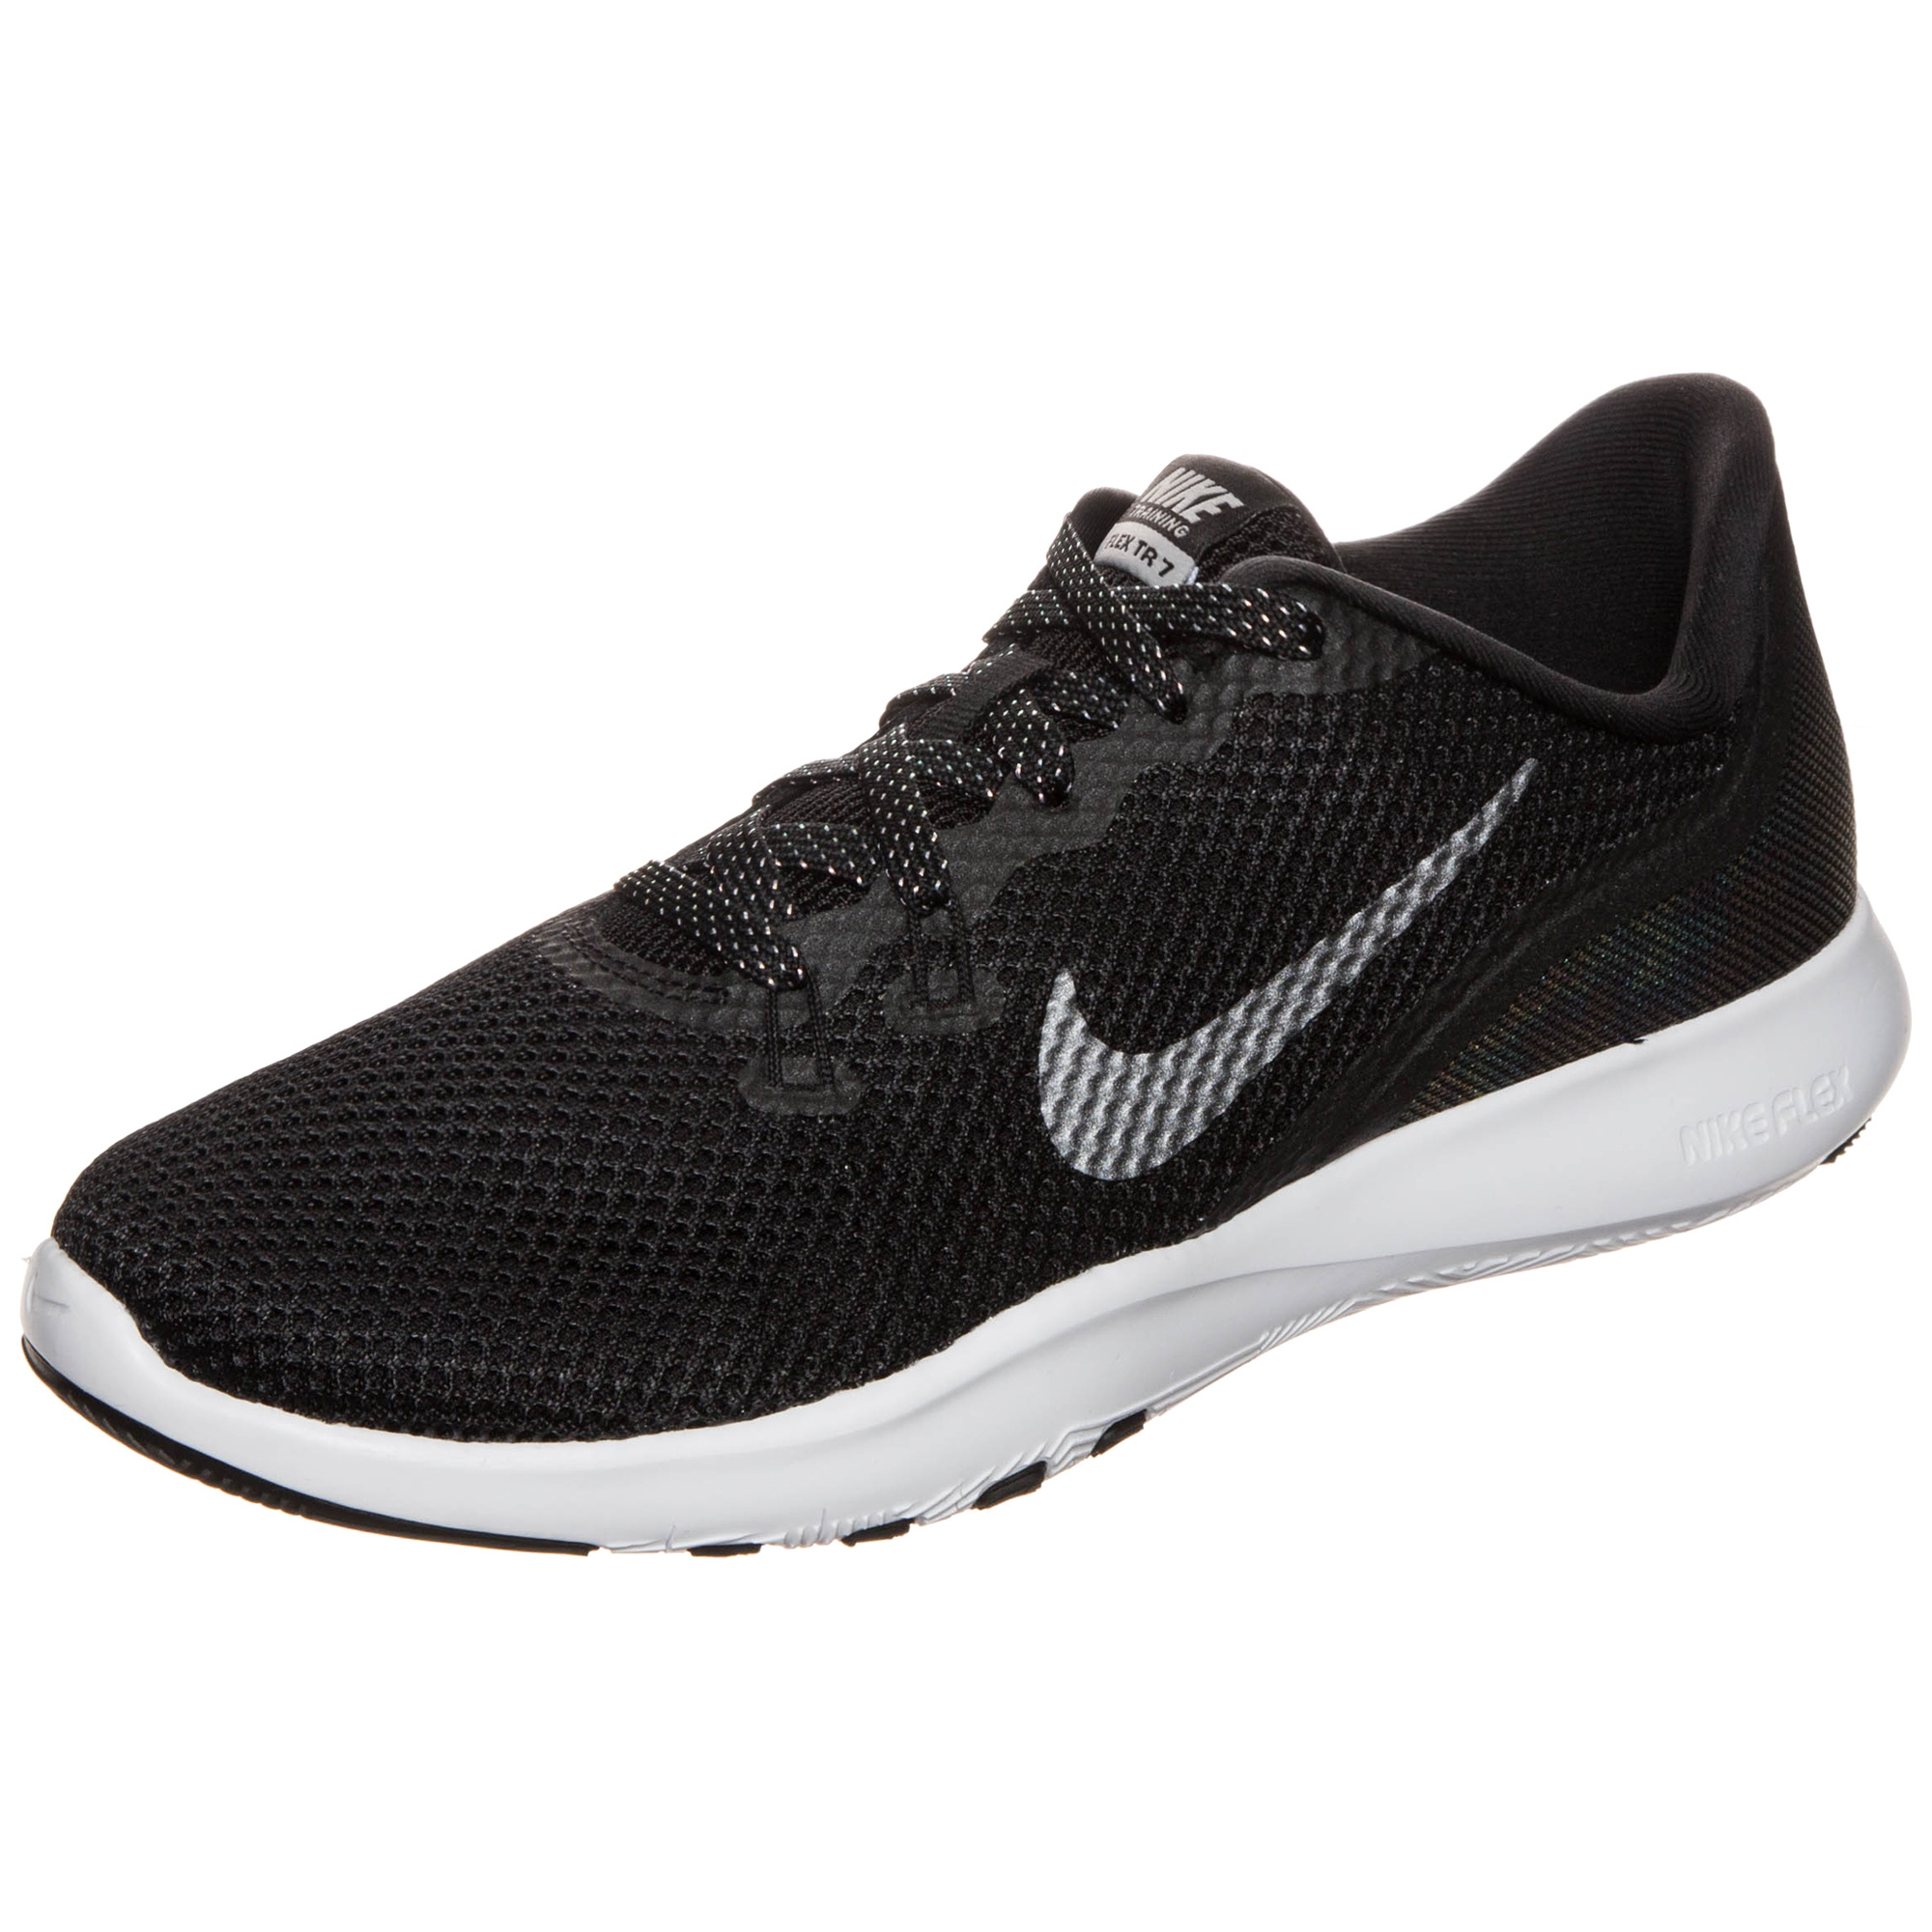 8120a8c6e7ef Nike FLEX TRAINER 7 METALLIC W women s Trainers in Black Image